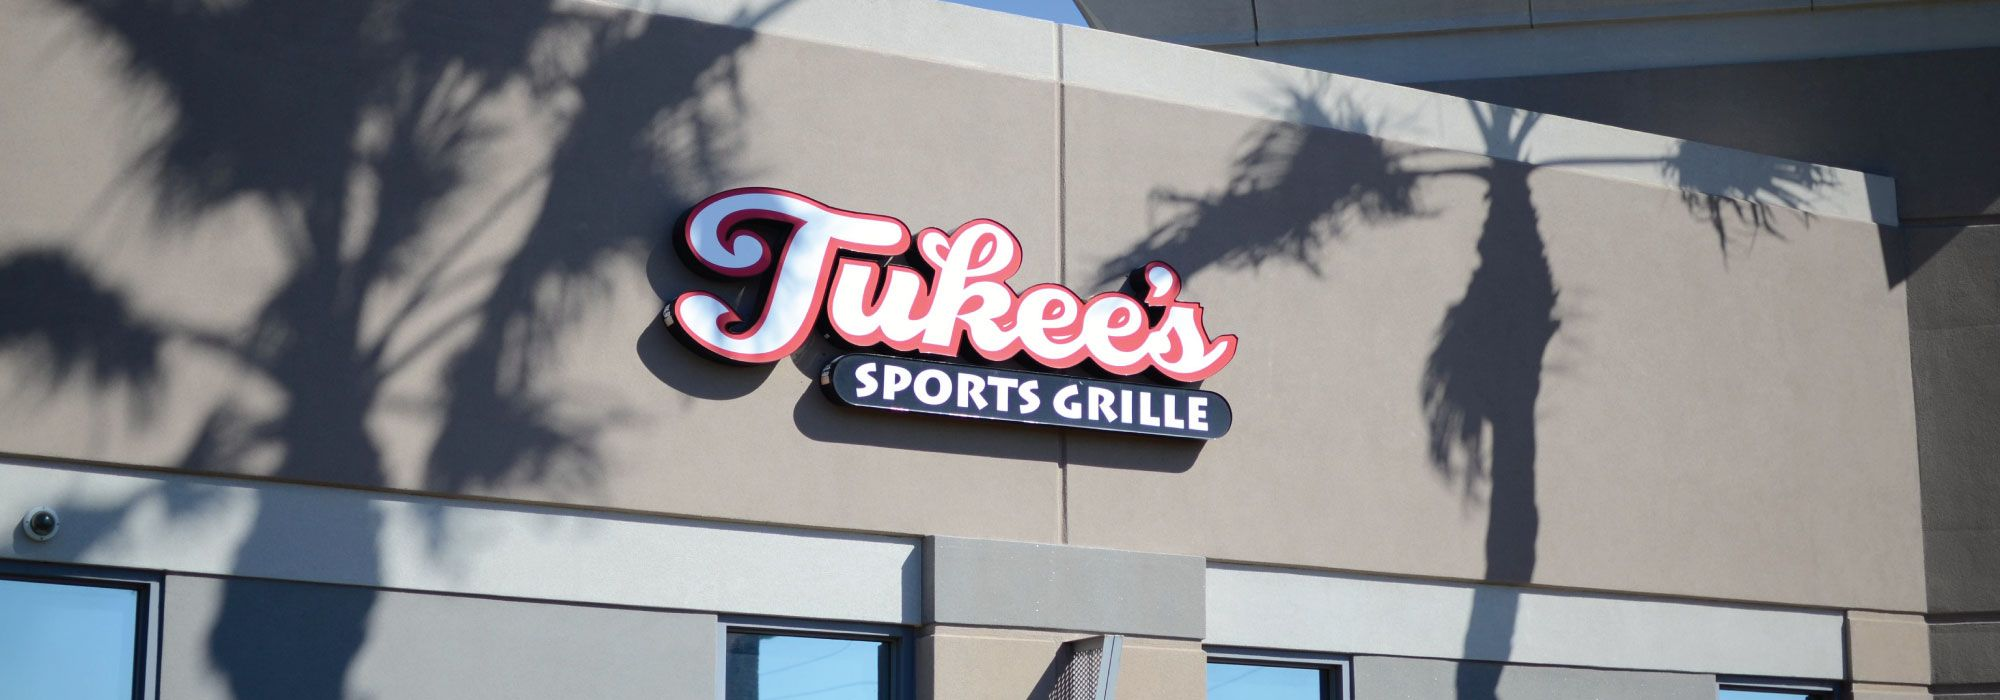 The chicken wings are the stuff of legend. Tukee's Sports